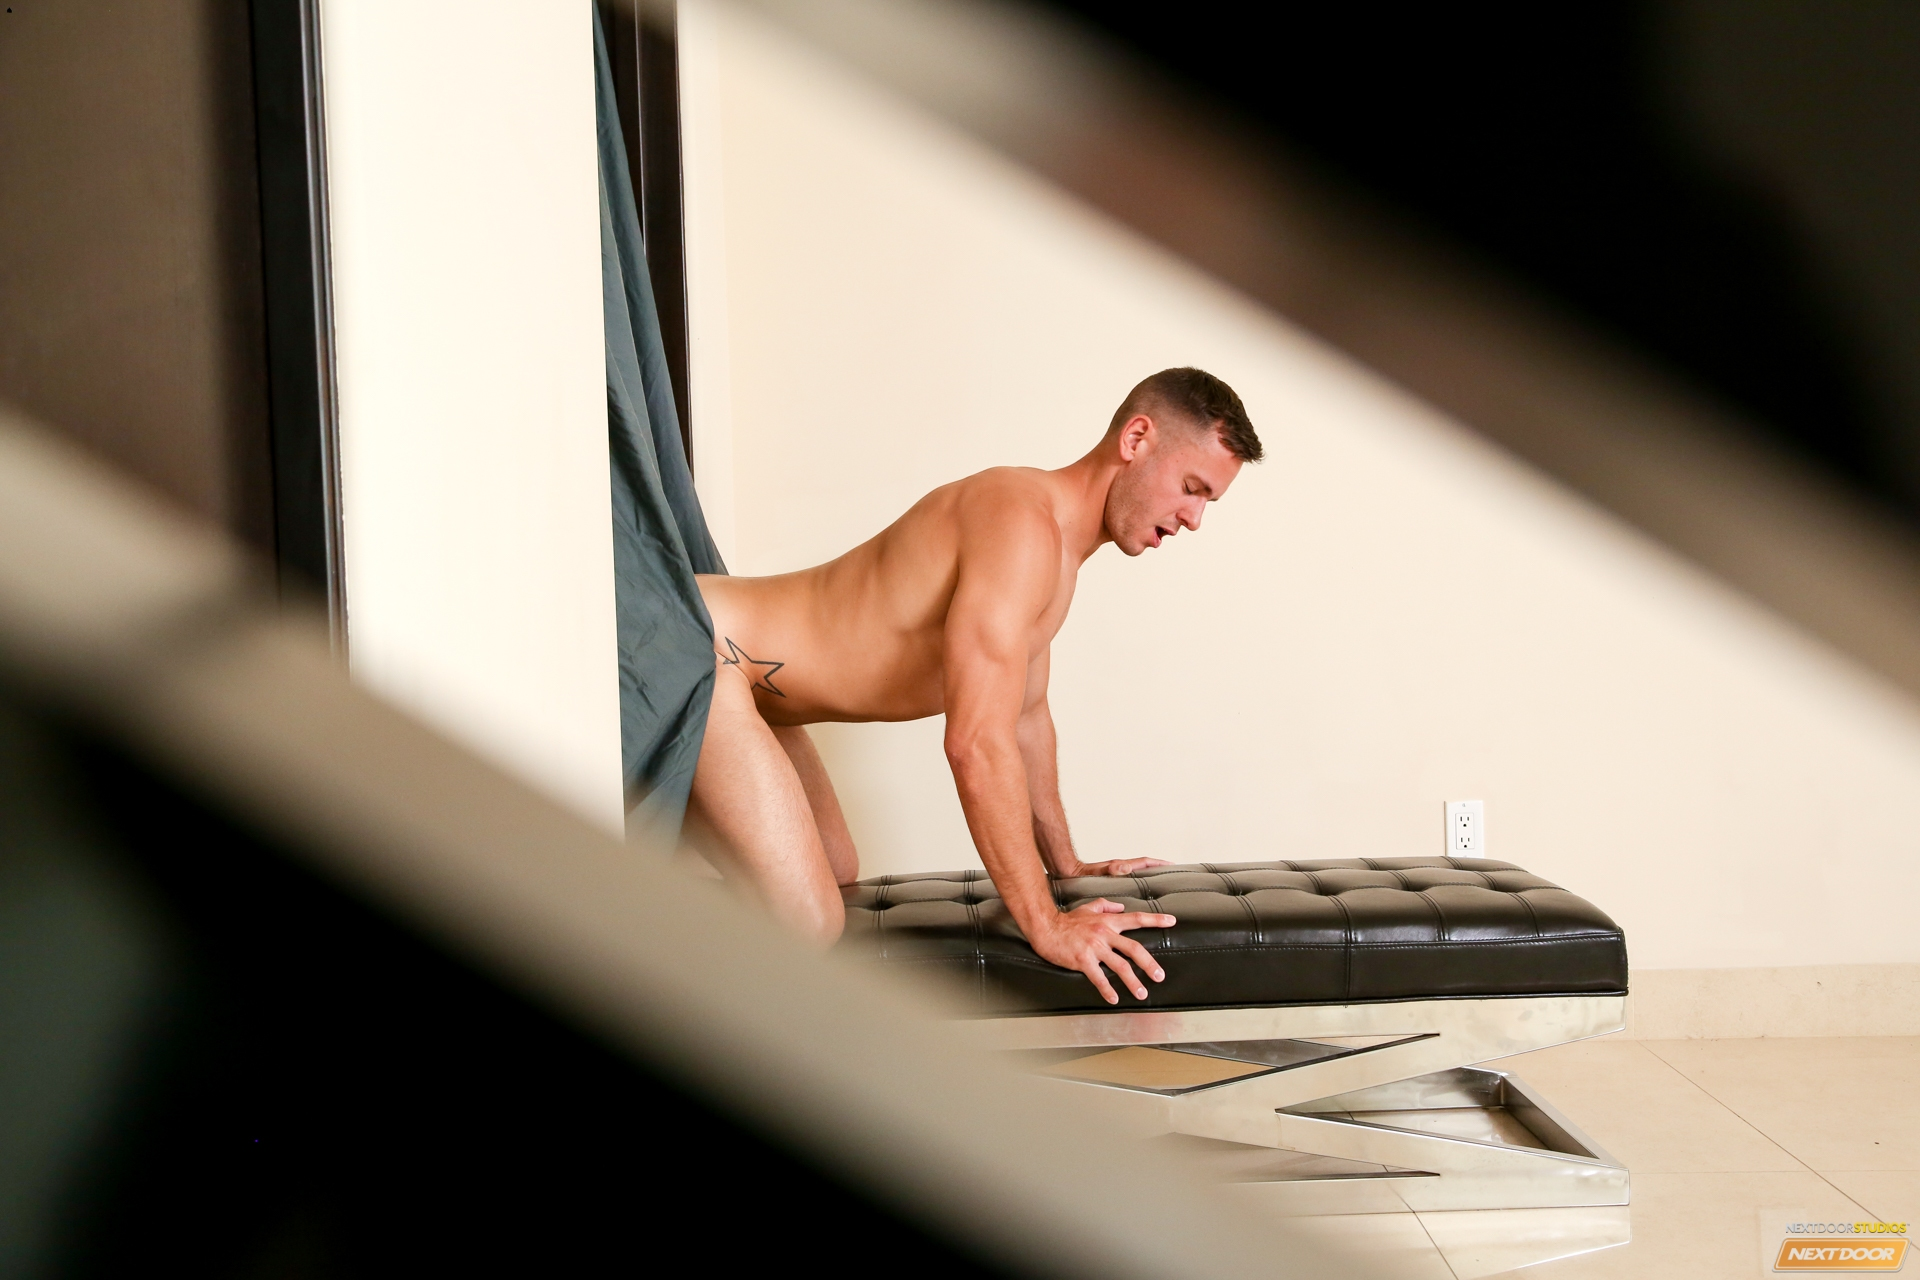 Fantasy : Gloryholes, a Thing of the Past?